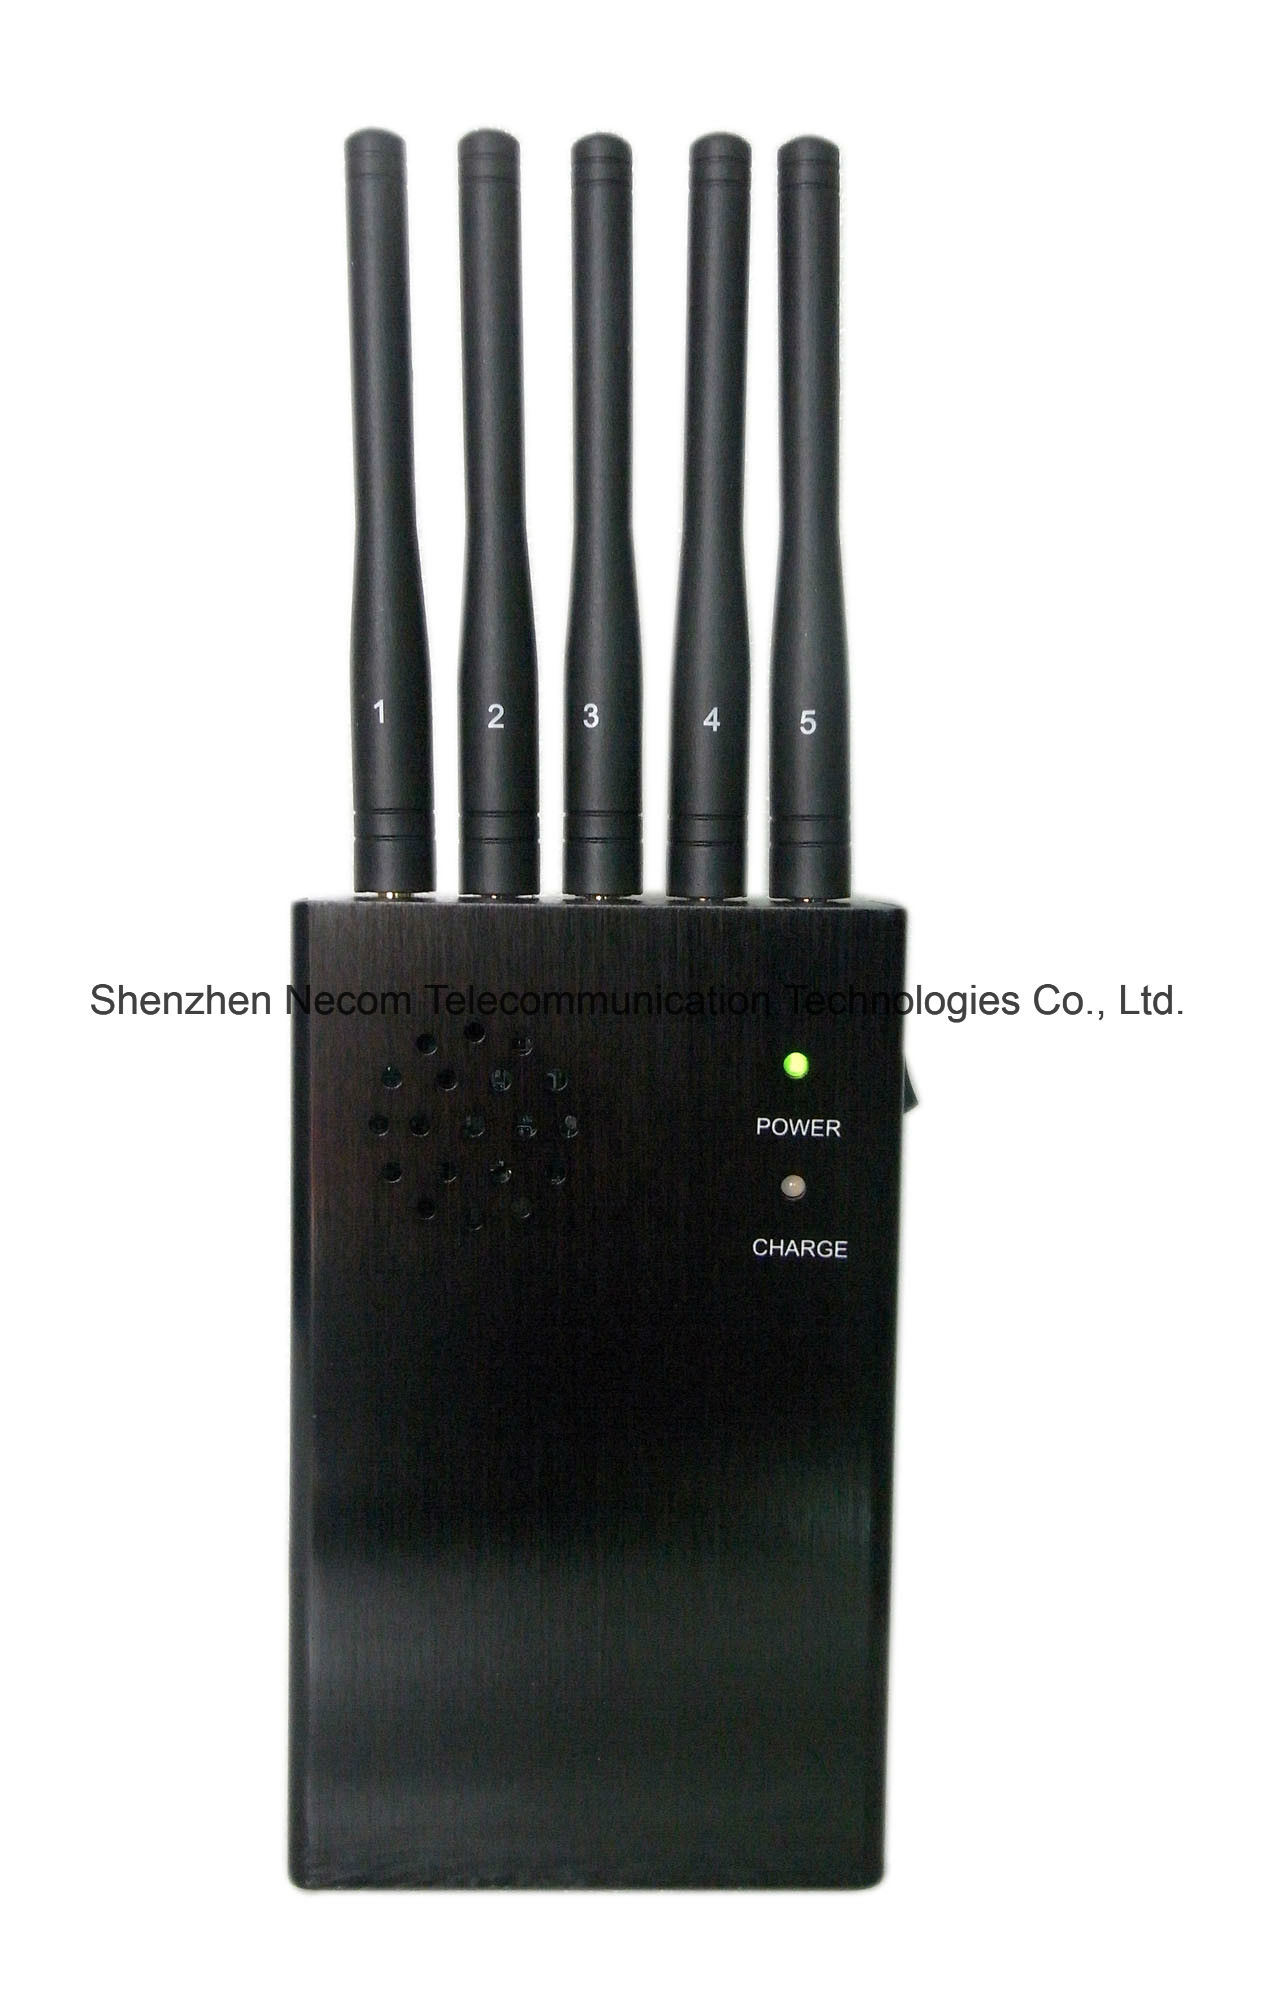 advantages of the mobile phone - China Cellulare Segnale Jammer, New Handheld 5 Bands 4G Jammer WiFi GPS Lojack Jammer with Car Charger, Portable Mobile Phone & Wi-Fi/Bluetooth Jammer - China 5 Band Signal Blockers, Five Antennas Jammers